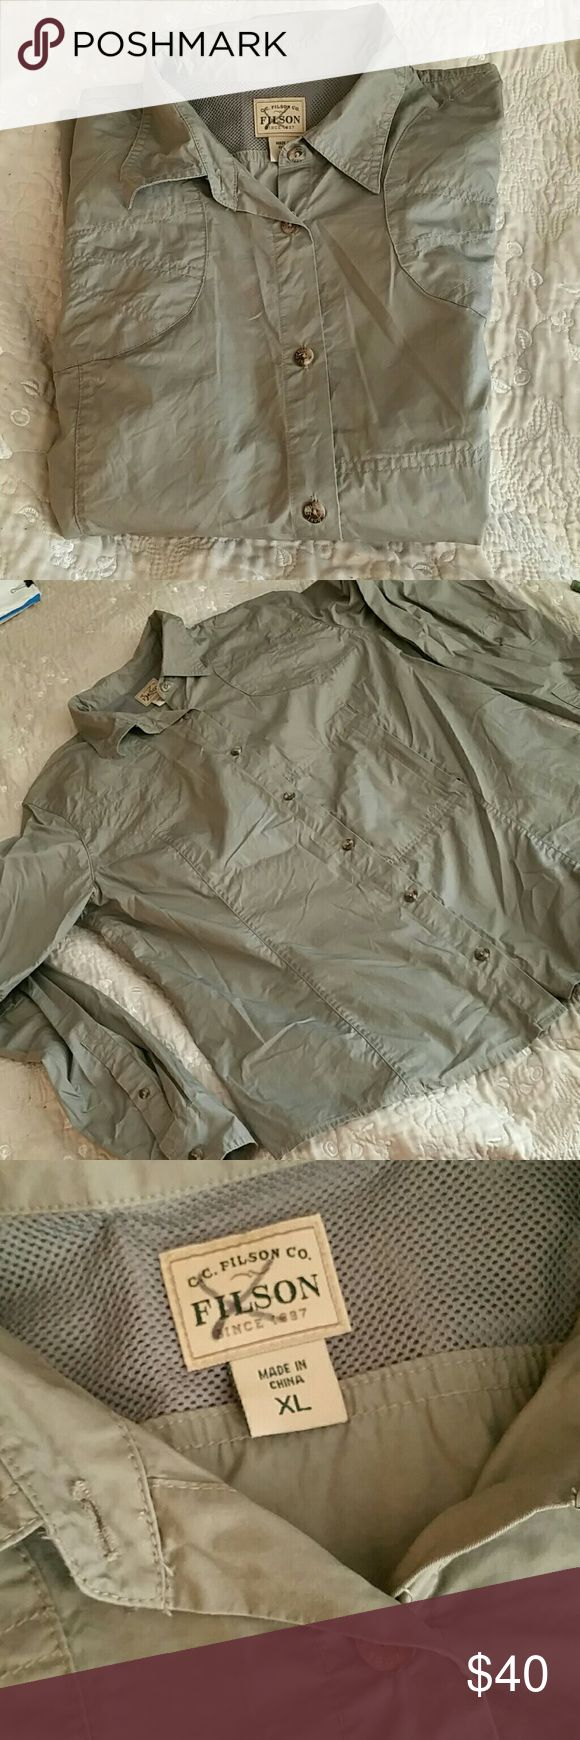 Filson's Khaki Safari Shirt NWOT. Khaki safari shirt from CC Filson's N Co. Vented neckline & unique yoke stitching with single invisible breast pocket.  A steal at this price. CC Filson's N Co. Tops Button Down Shirts